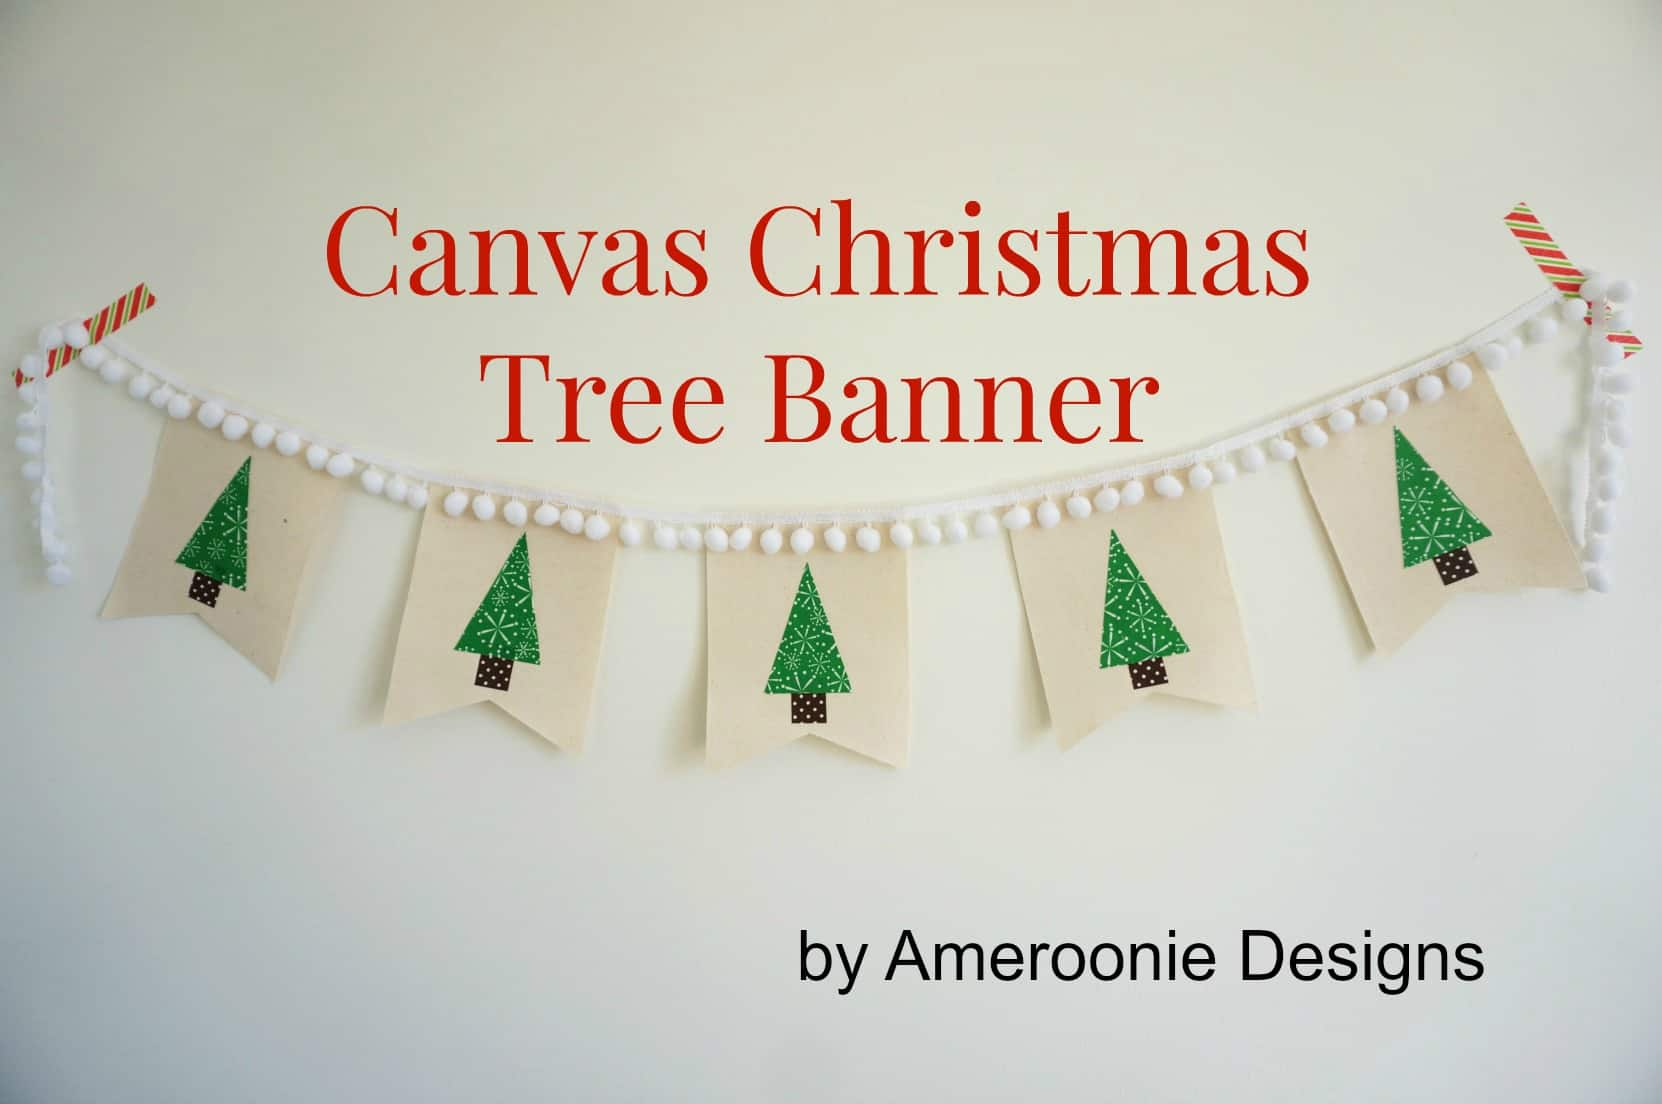 Canvas Christmas Tree Banner